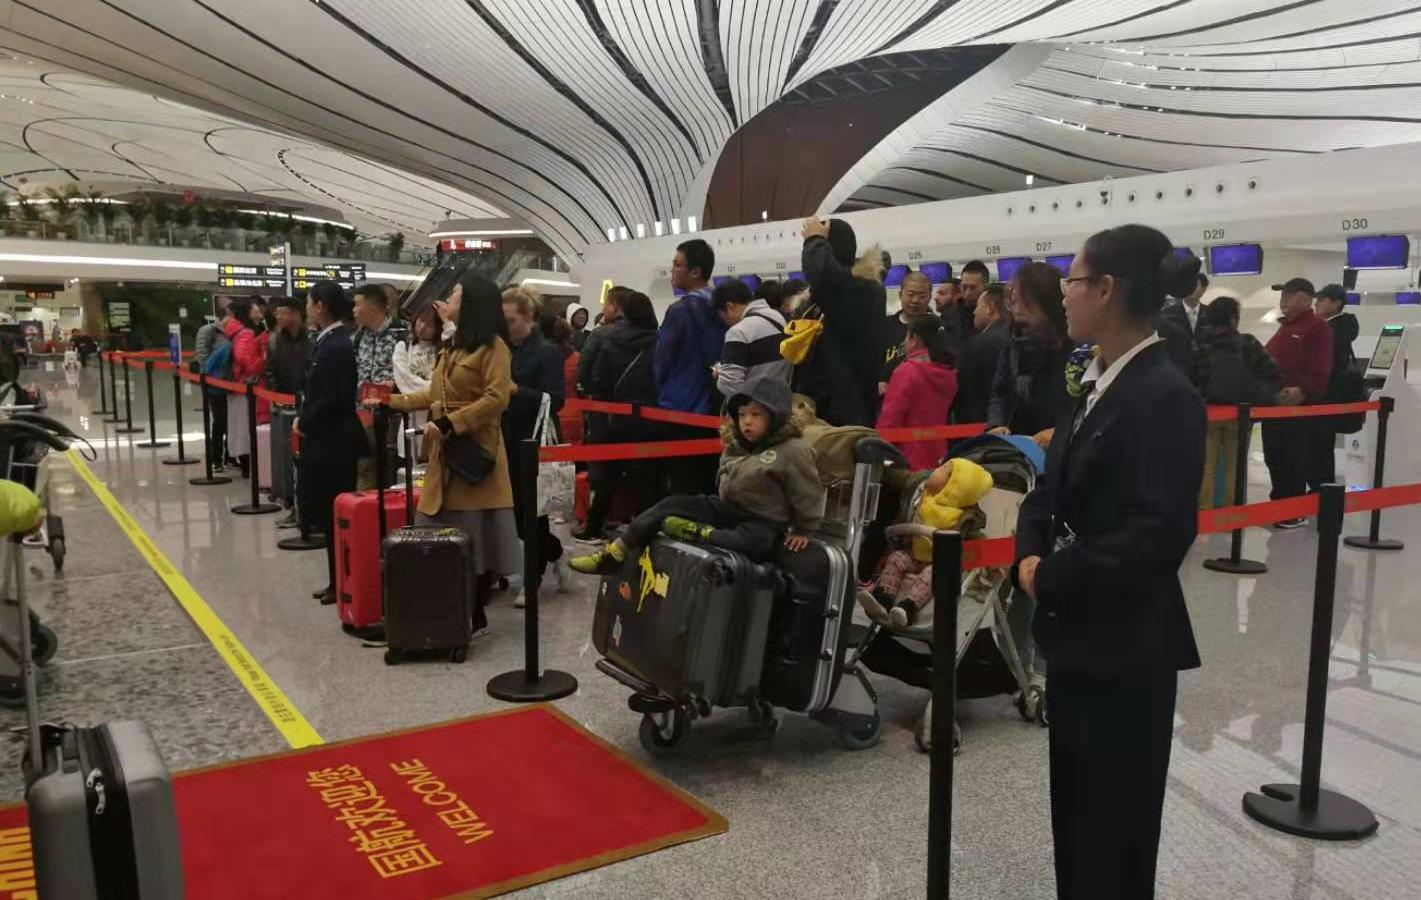 First intl flight takes off from Beijing's Daxing airport